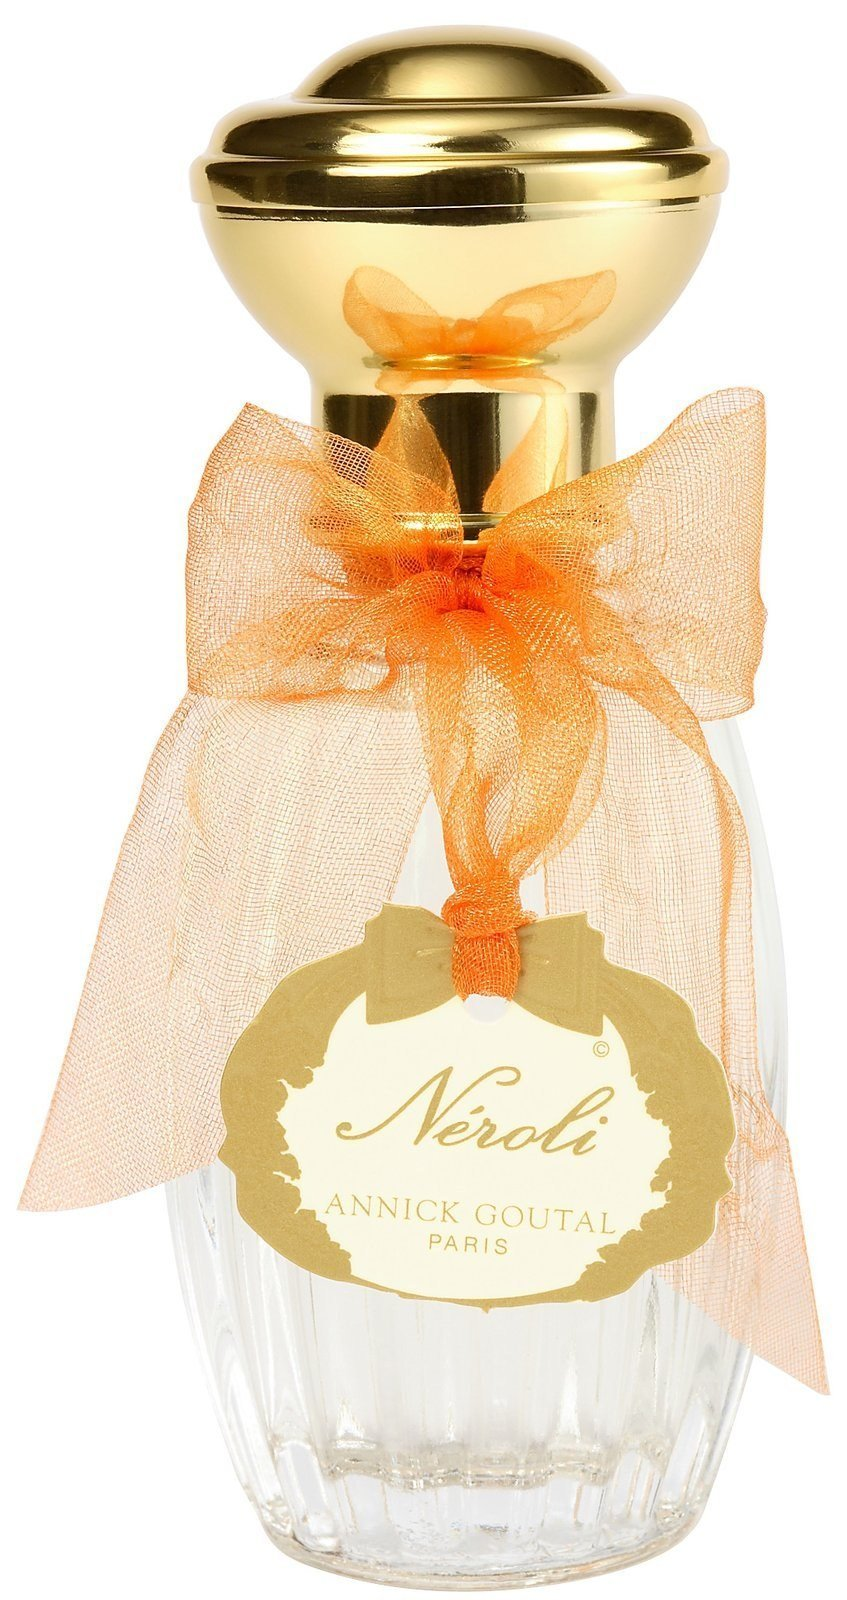 Goutal / Annick Goutal - Néroli | Reviews and Rating